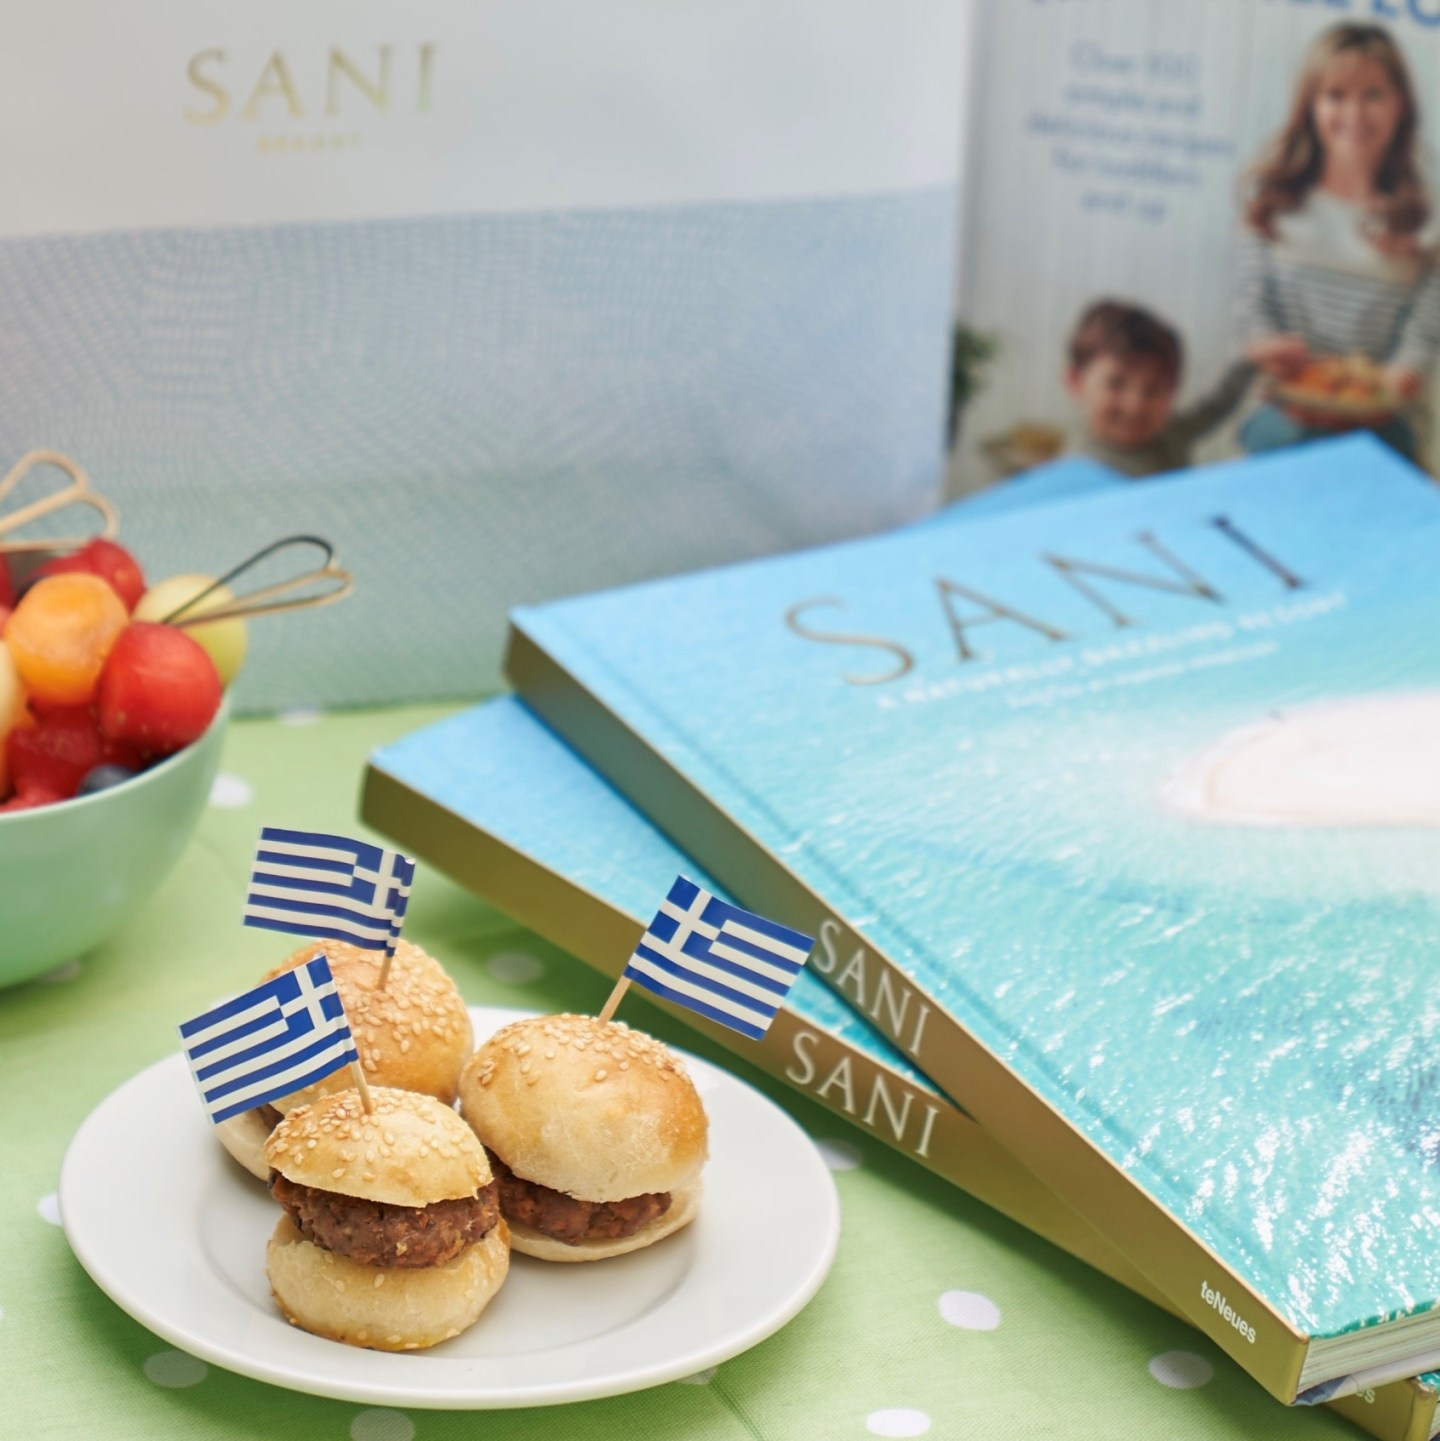 Annabel Karmel's kids menu for Sani Resort, Young Explorer Menu